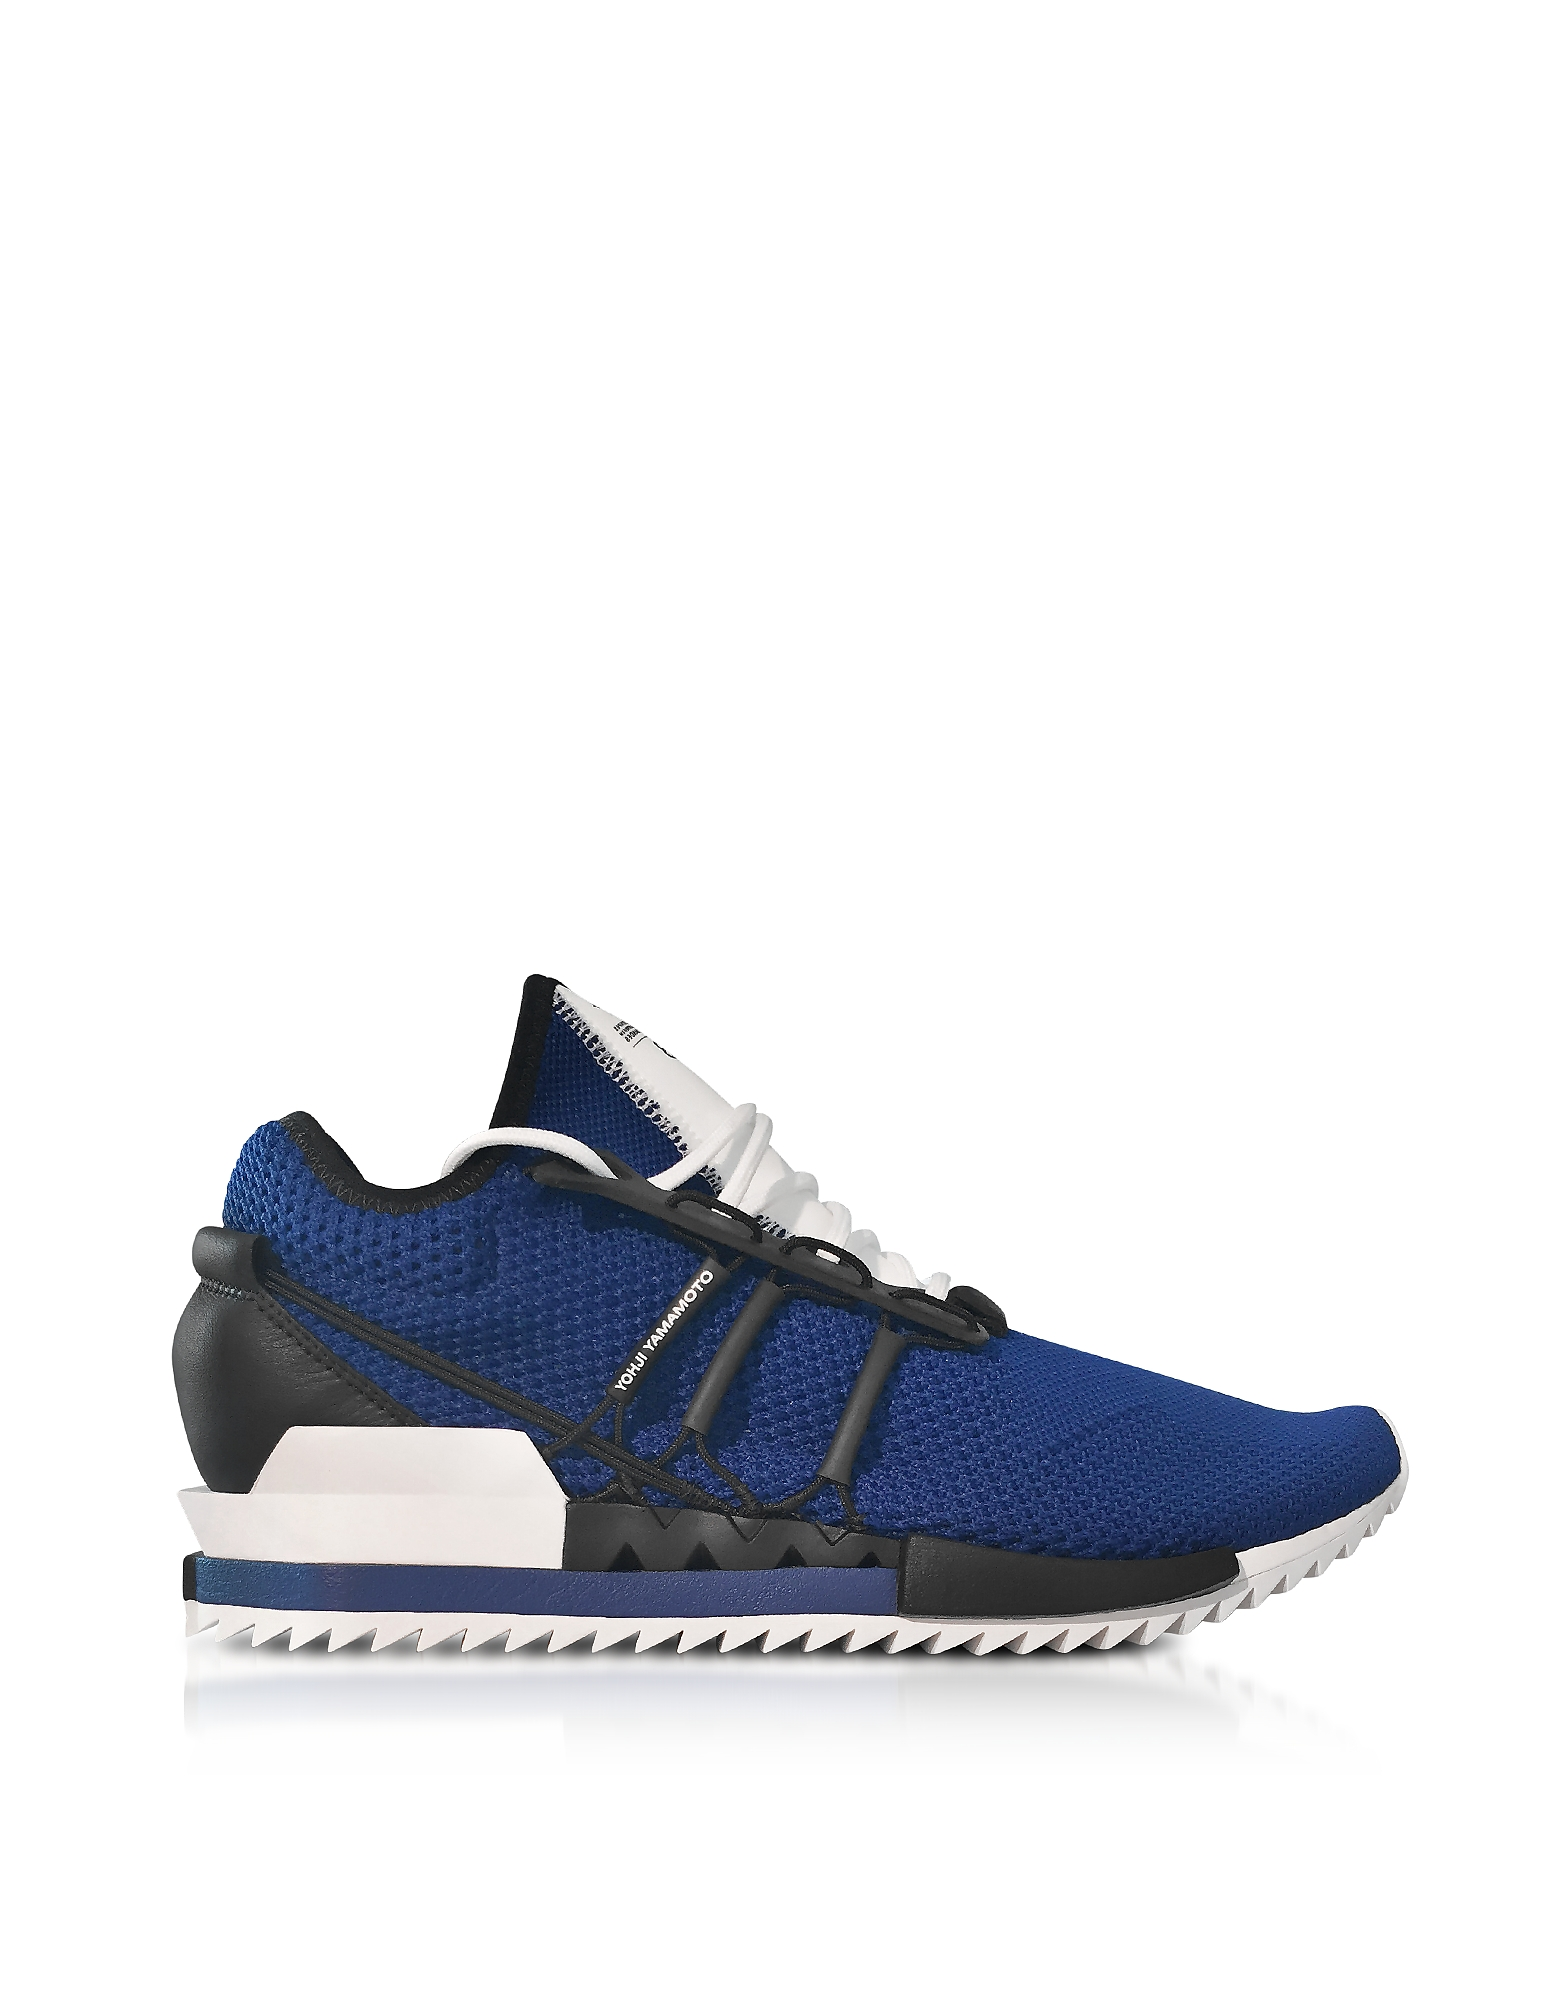 Y-3 Shoes, Mistery Ink Y-3 Harigane Sneakers